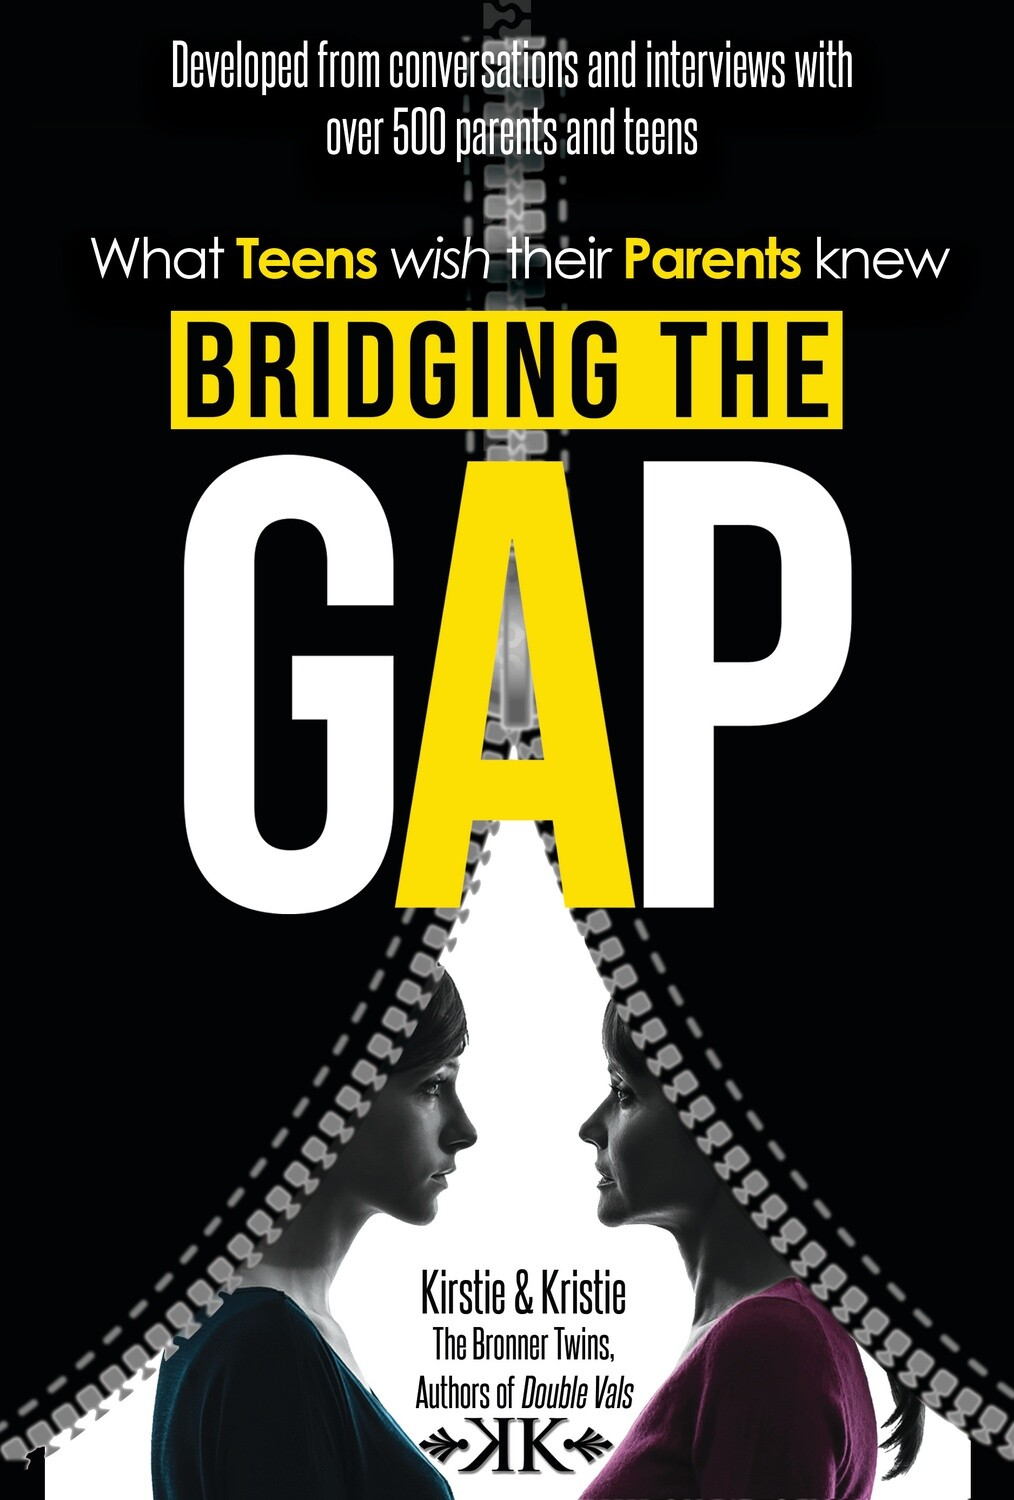 Bridging the Gap: What Teens Wish Their Parents Knew